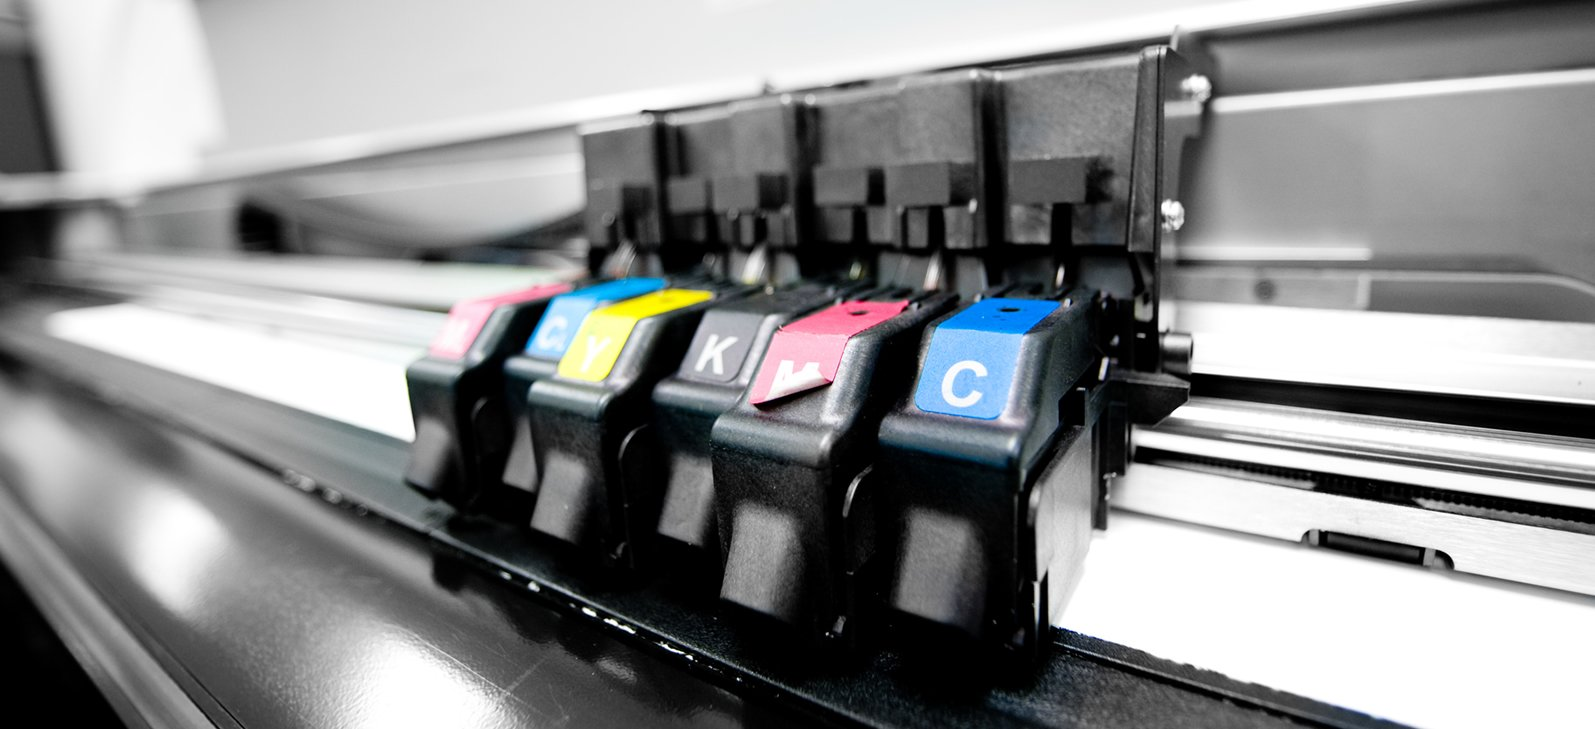 Blog: 6 Ways Managed Print Services Rein in the Chaos and Save Money